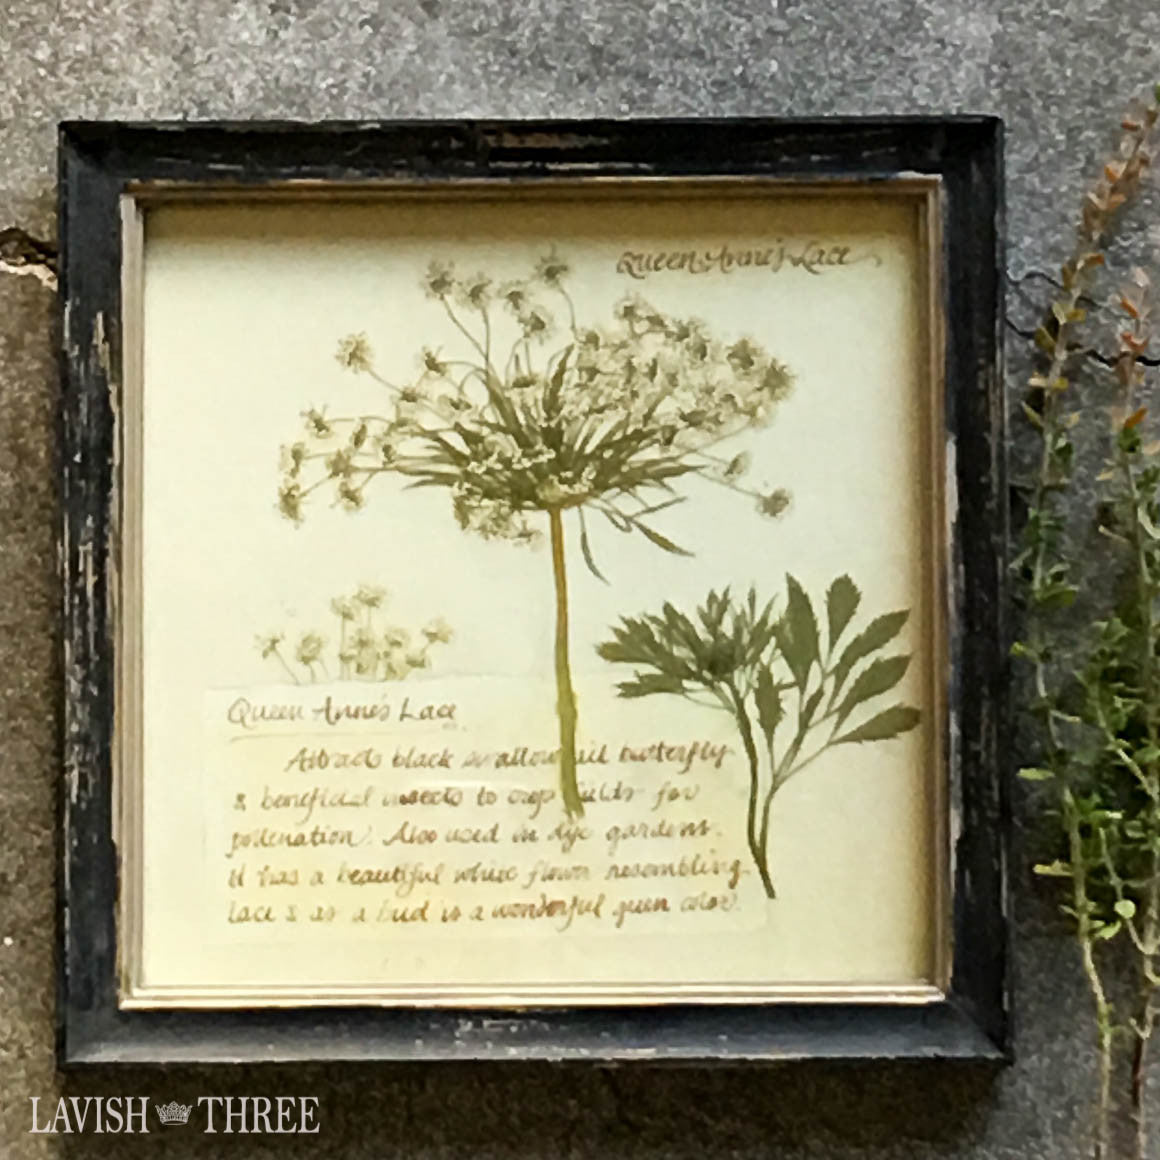 Queen anne's lace framed vintage botanical floral print wall art decor